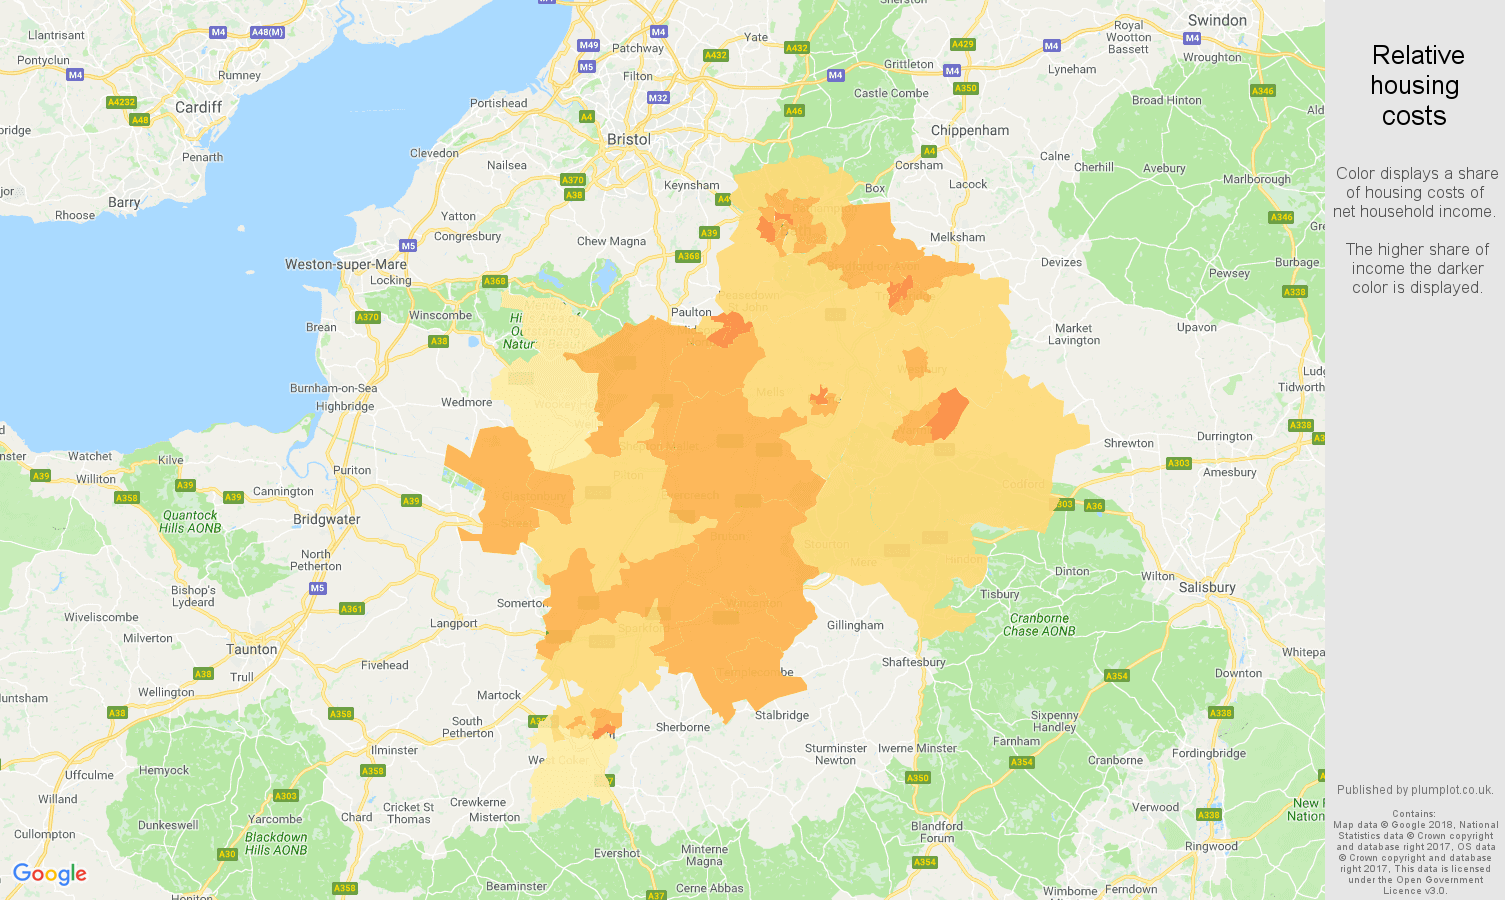 Bath relative housing costs map